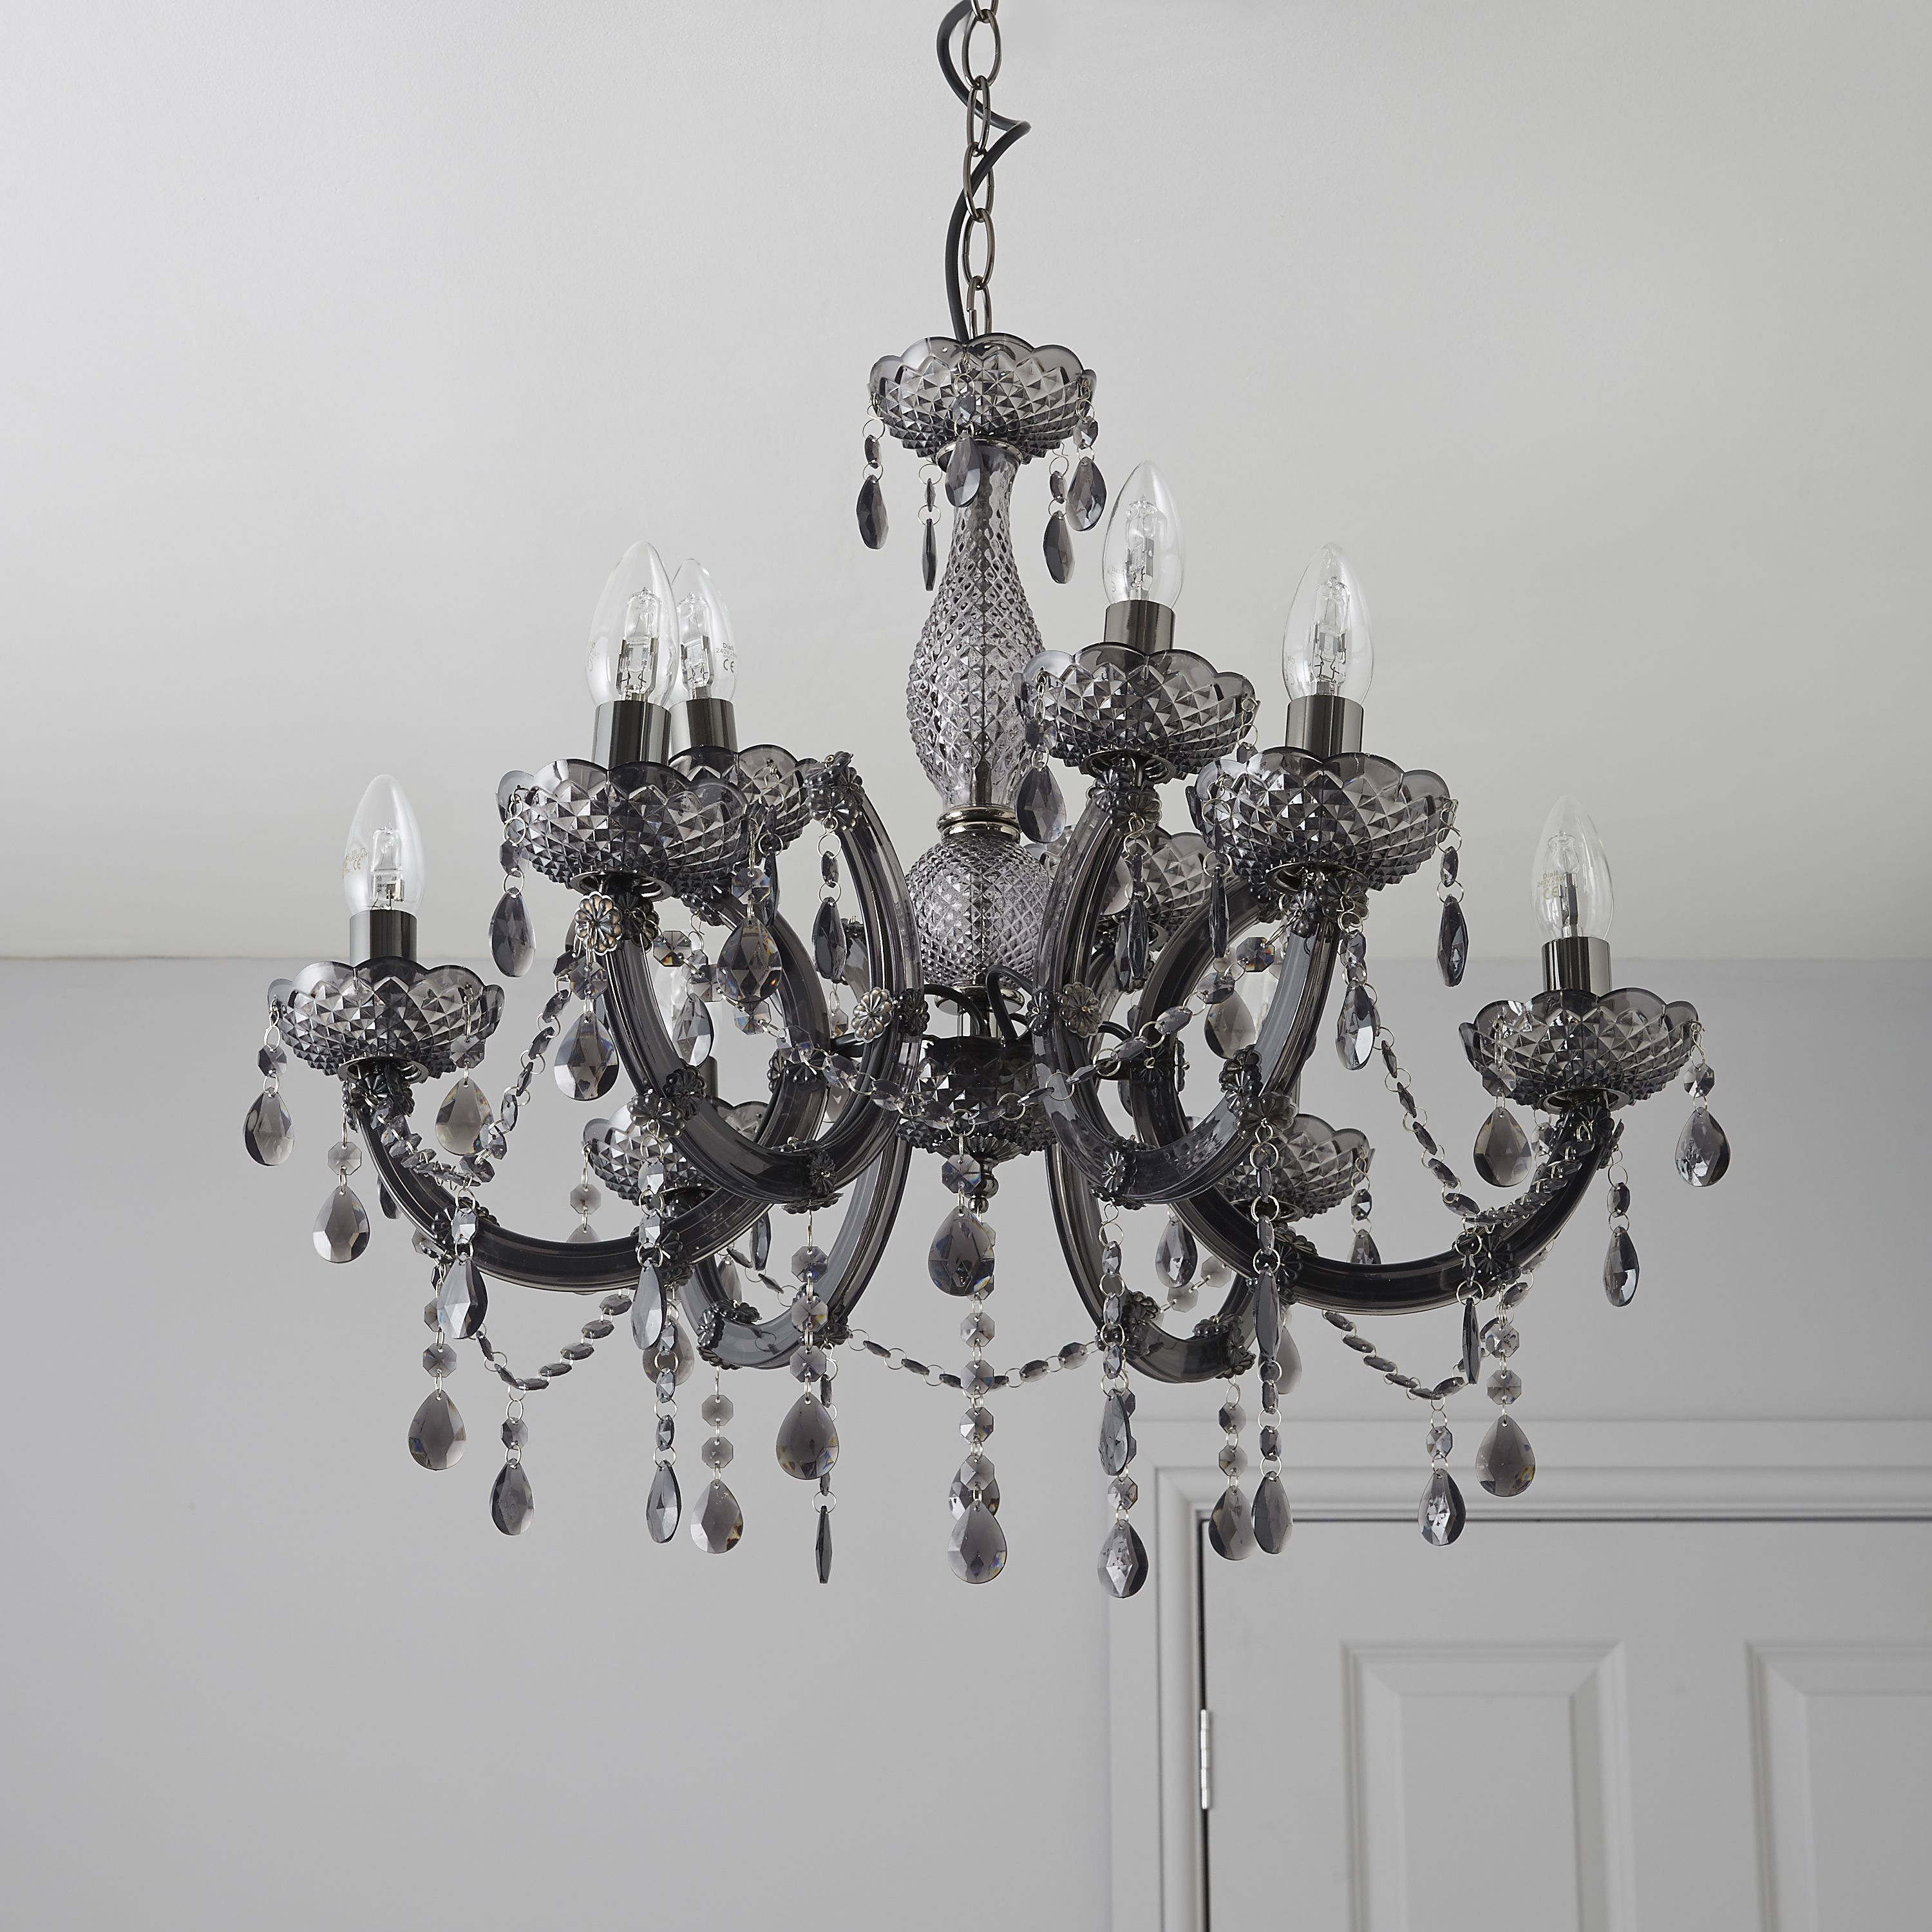 B And Q Lighting Ceiling: Annelise Crystal Droplets Smoked 9 Lamp Chandelier | Departments | DIY at  B&Q,Lighting